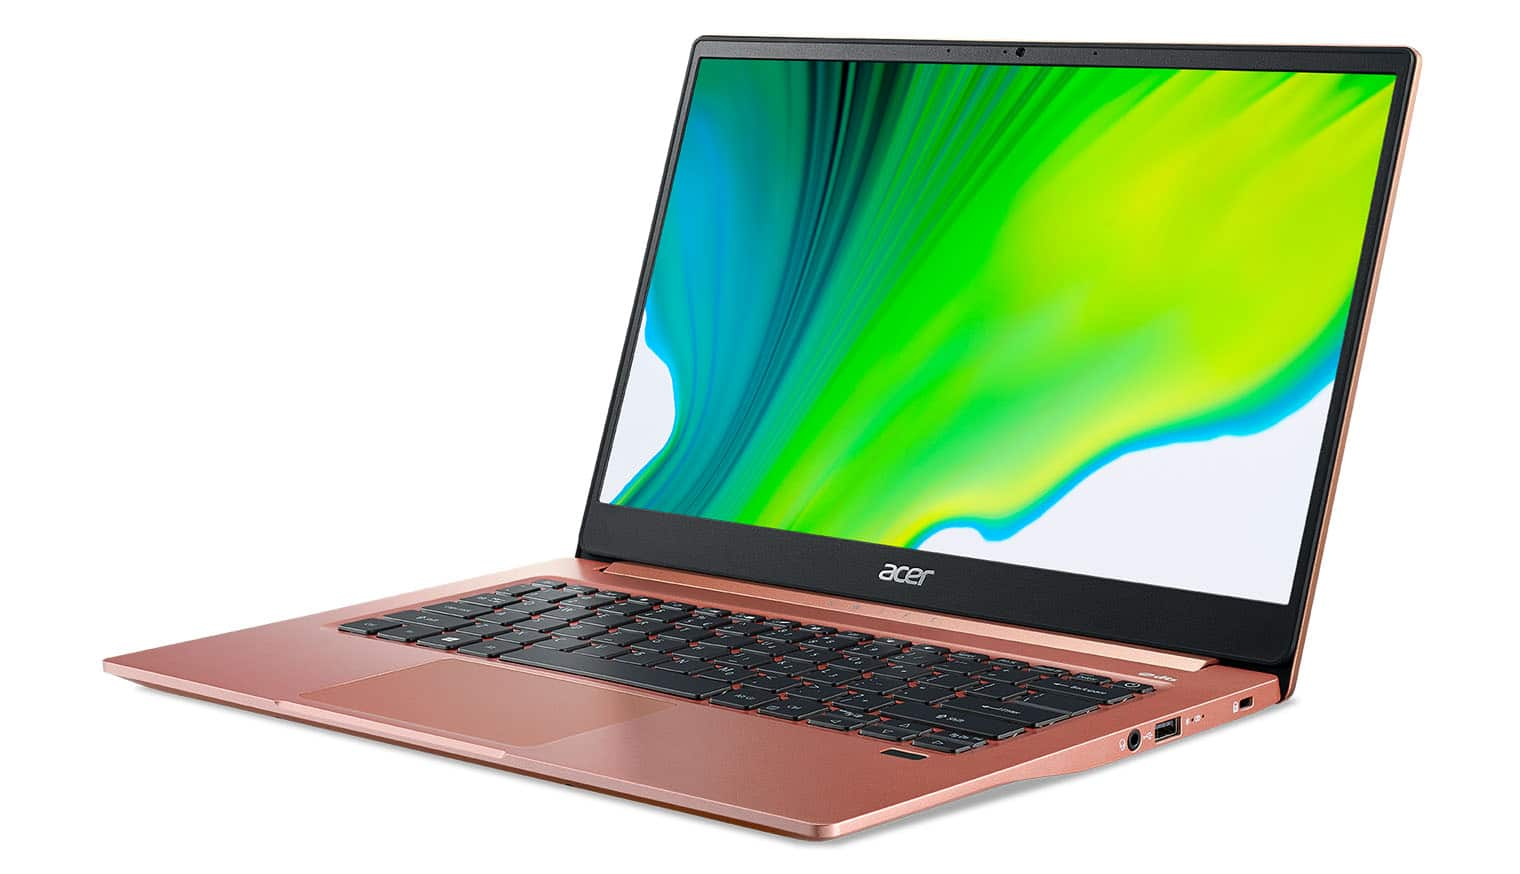 acer swift 3 sf314-59 melon pink